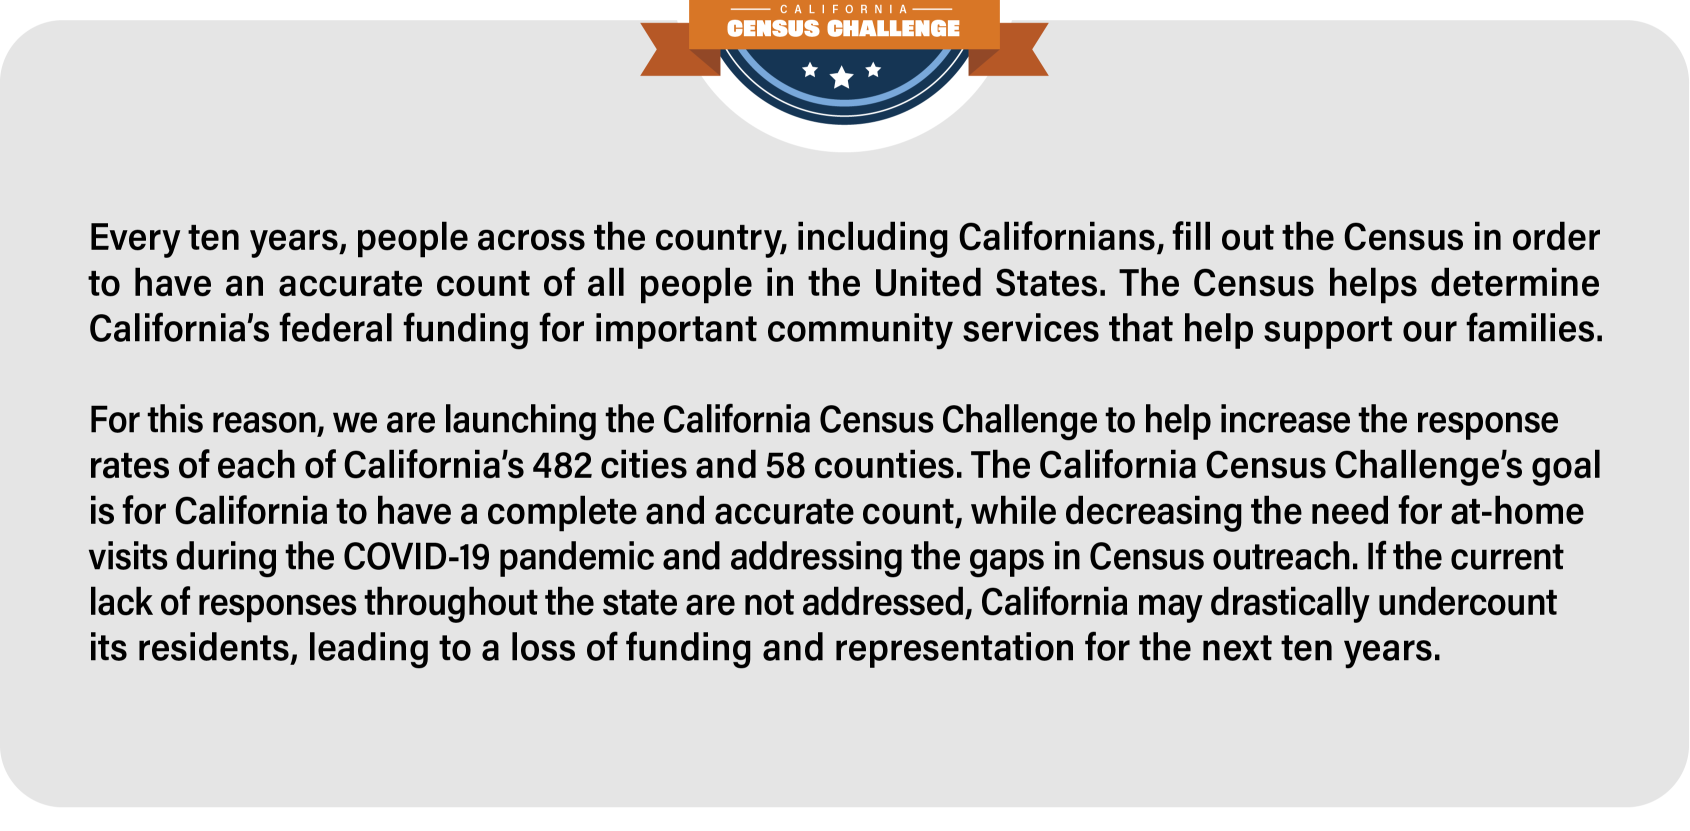 Every 10 years, people across the country, including Californians, fill out the Census in order to have an accurate count of all people in the United States. The Census helps determine California's federal funding for important community services that help support our families.For this reason, we are launching the California Census Challenge to help increase the response rates of each of California's 482 cities and 58 counties. The California Census Challenge's goal is for California to have a complete and accurate count, while decreasing the need for at-home visits during the COVID-19 pandemic and addressing the gaps in Census outreach. If the current lack of responses throughout the state is not addressed, California may drastically undercount its residents, leading to a loss of funding and representation for the next ten years.